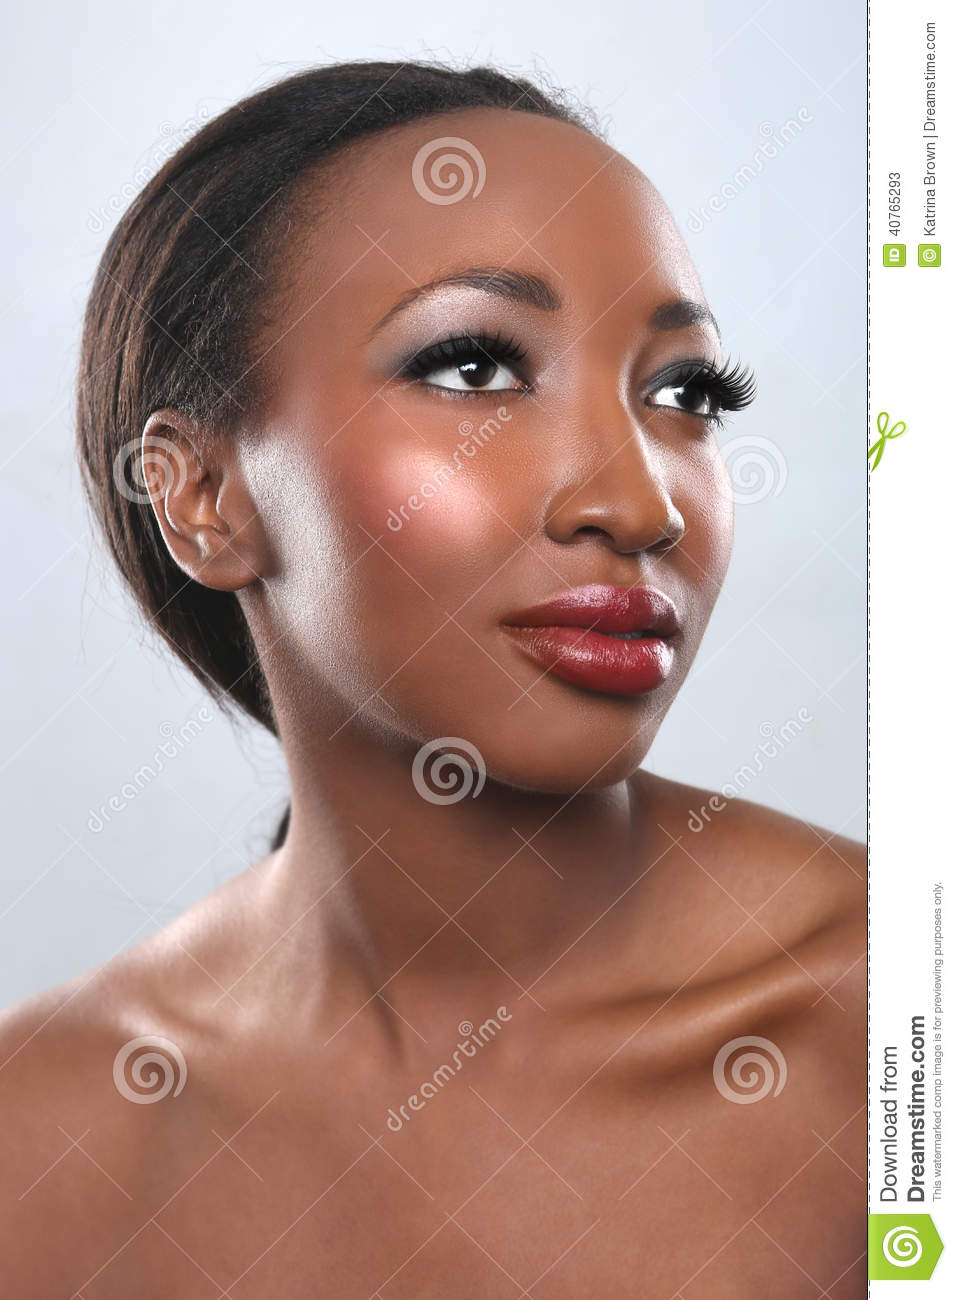 African American Woman With Beauty Makeup Stock Photo - Image ...